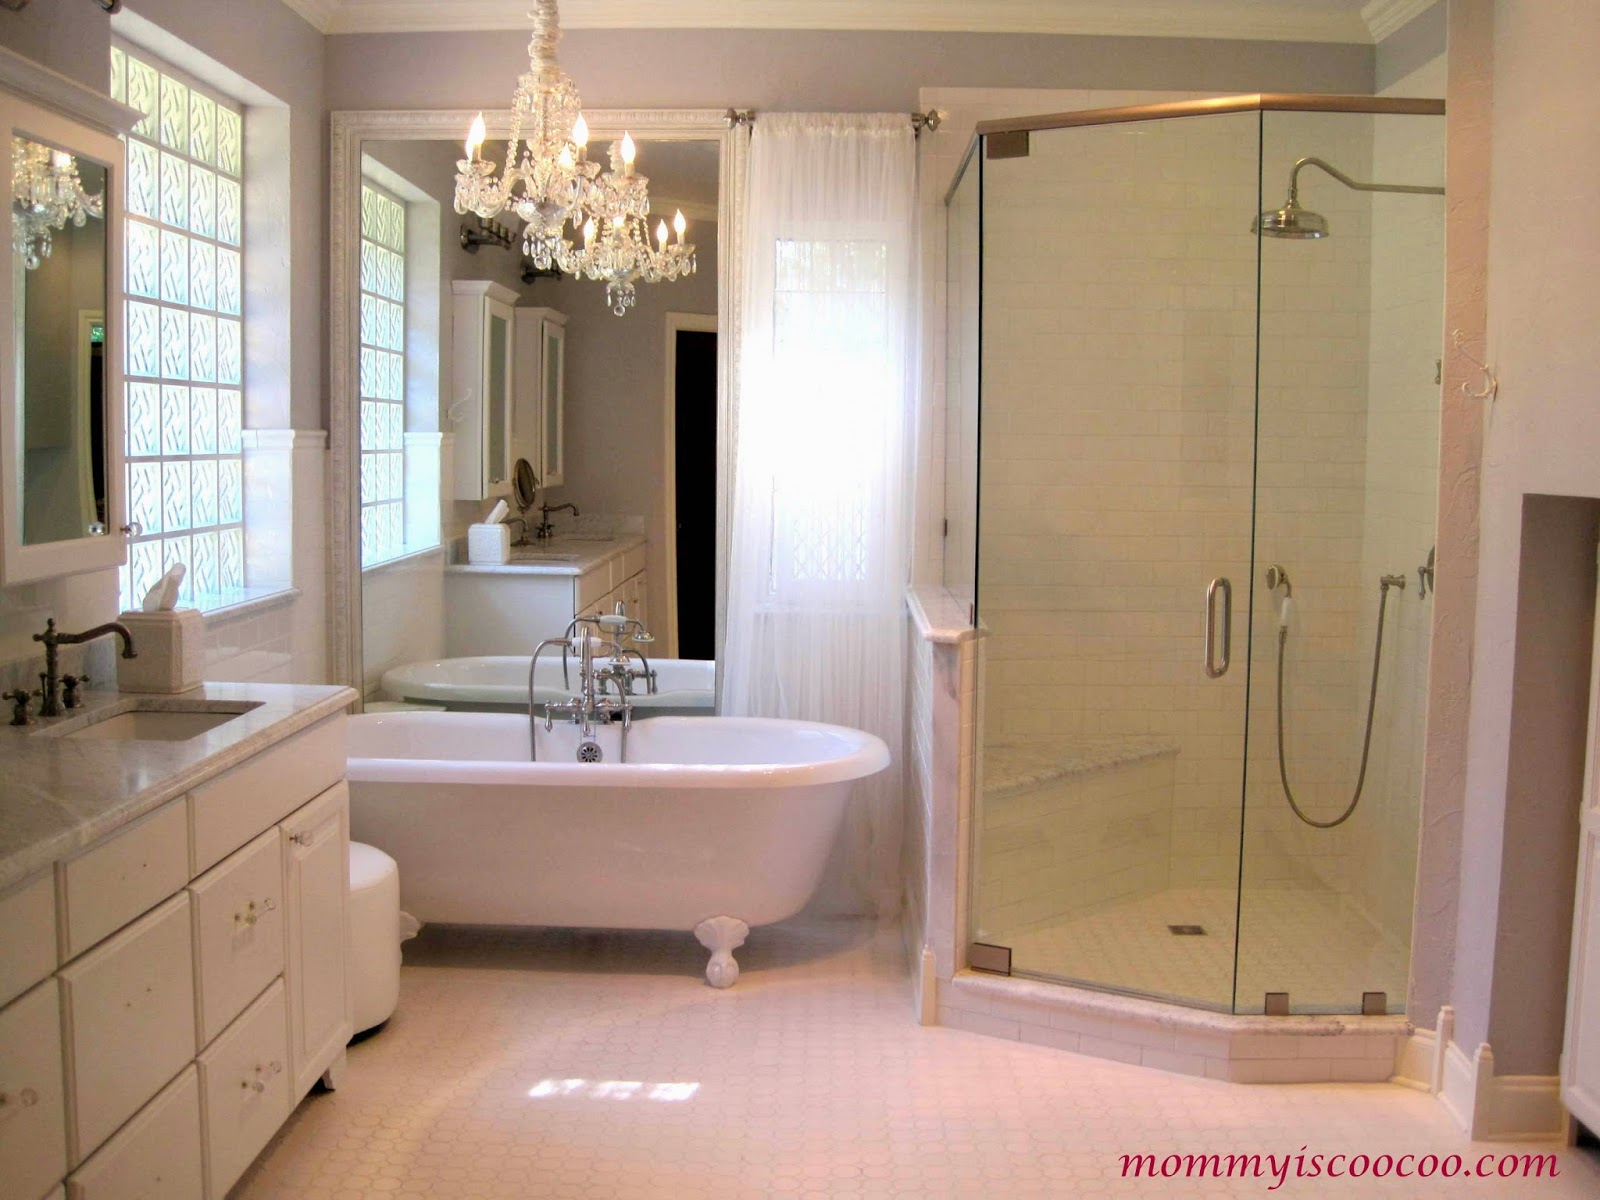 Cost to add a new owner built bathroom armchair builder blog - White Master Bathroom Makeover Mommy Is Coocoo On Remodelaholic